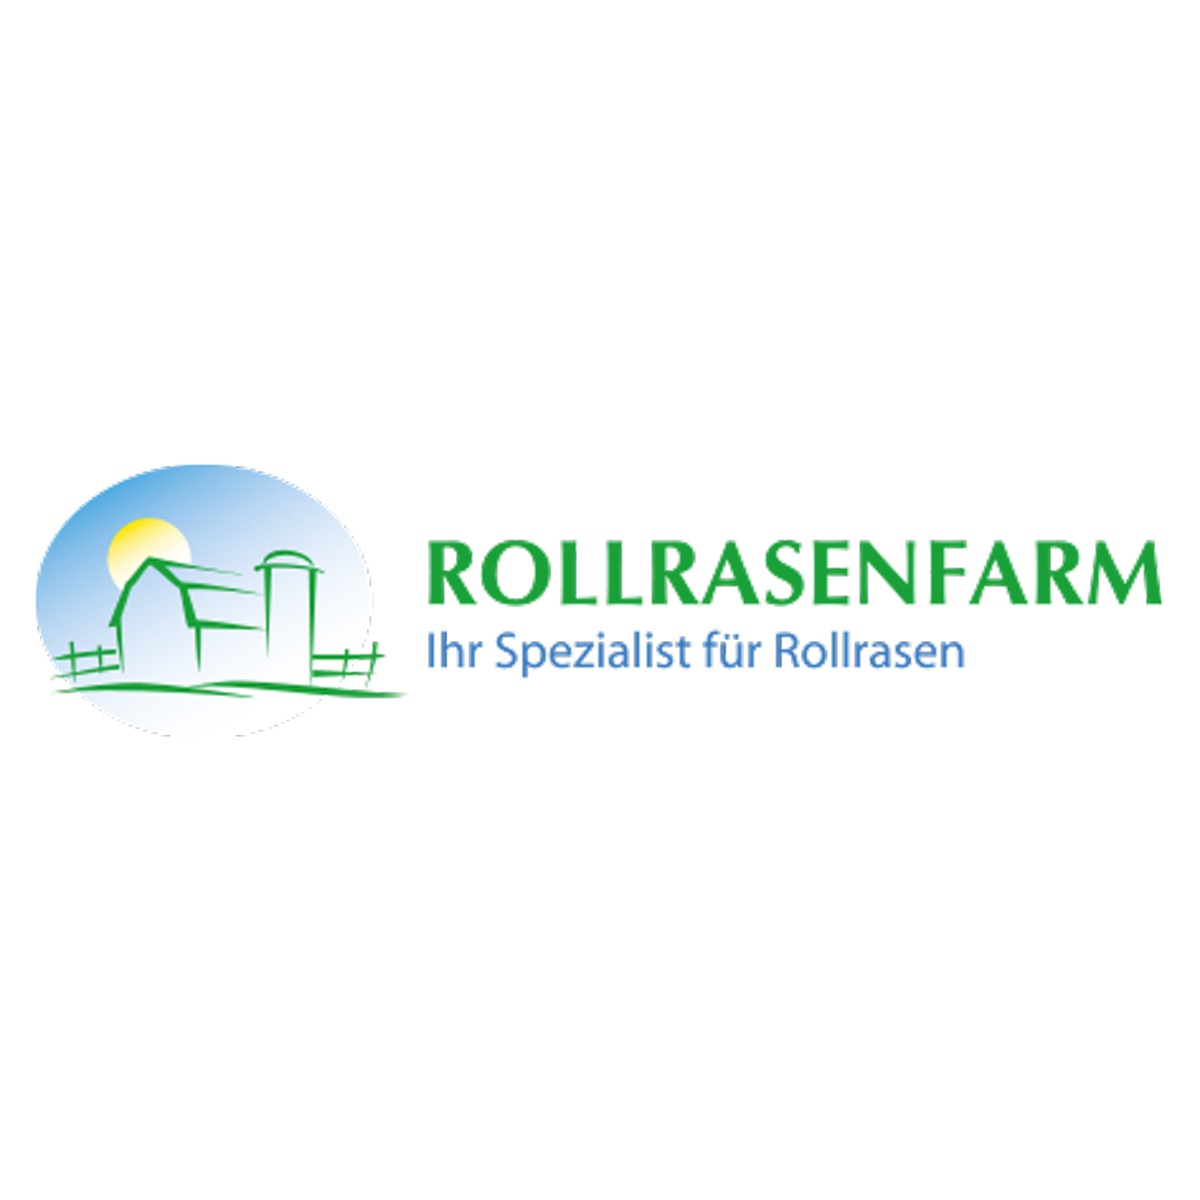 Rollrasenfarm